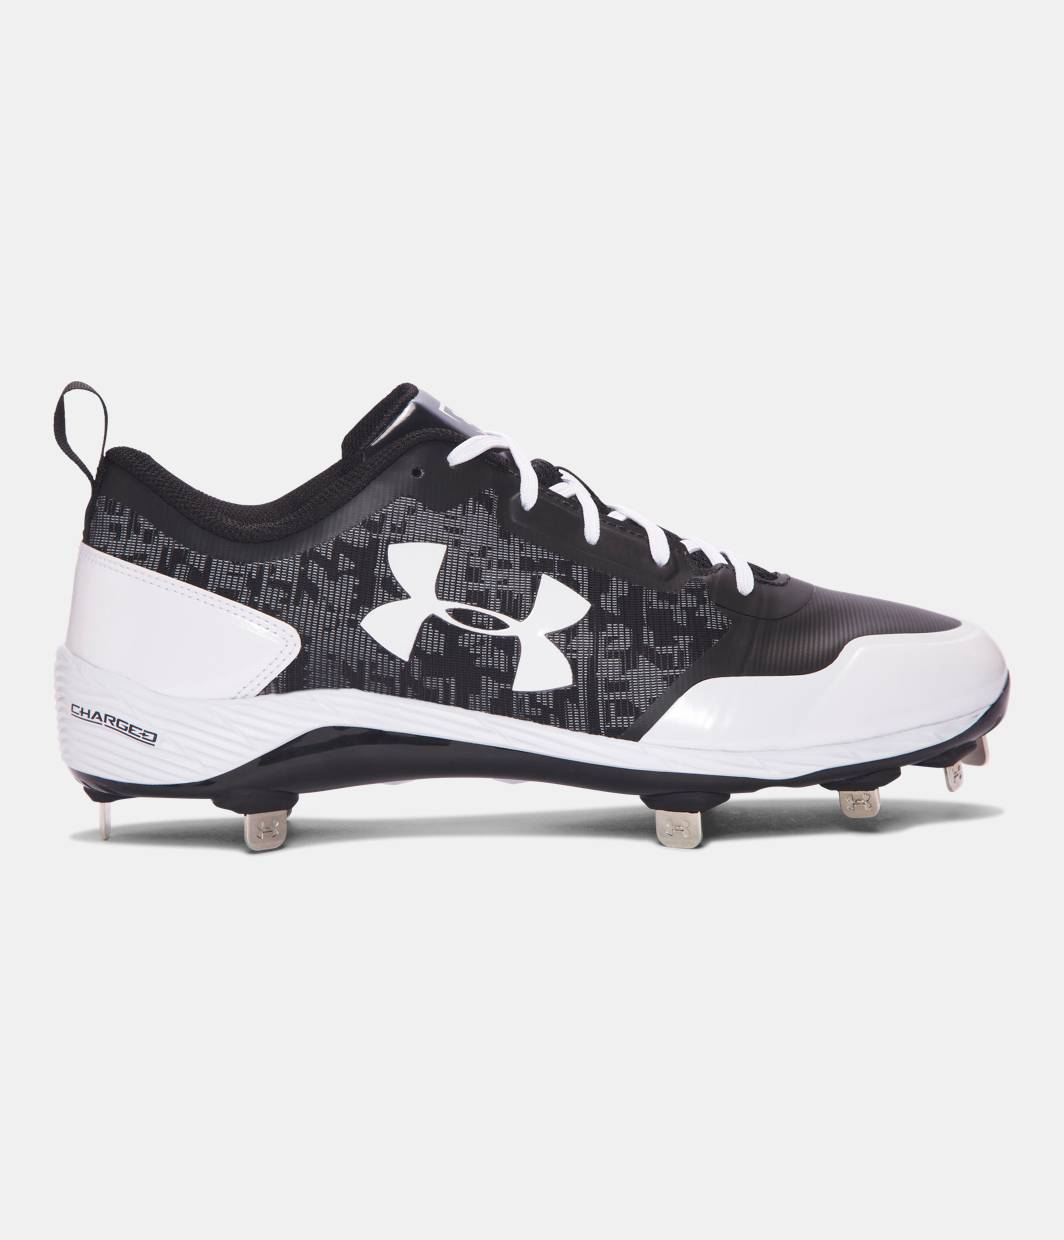 ce32a2811c8e Under Armour Men's Heater Low ST Baseball Cleats   Nutmeg Sporting Goods